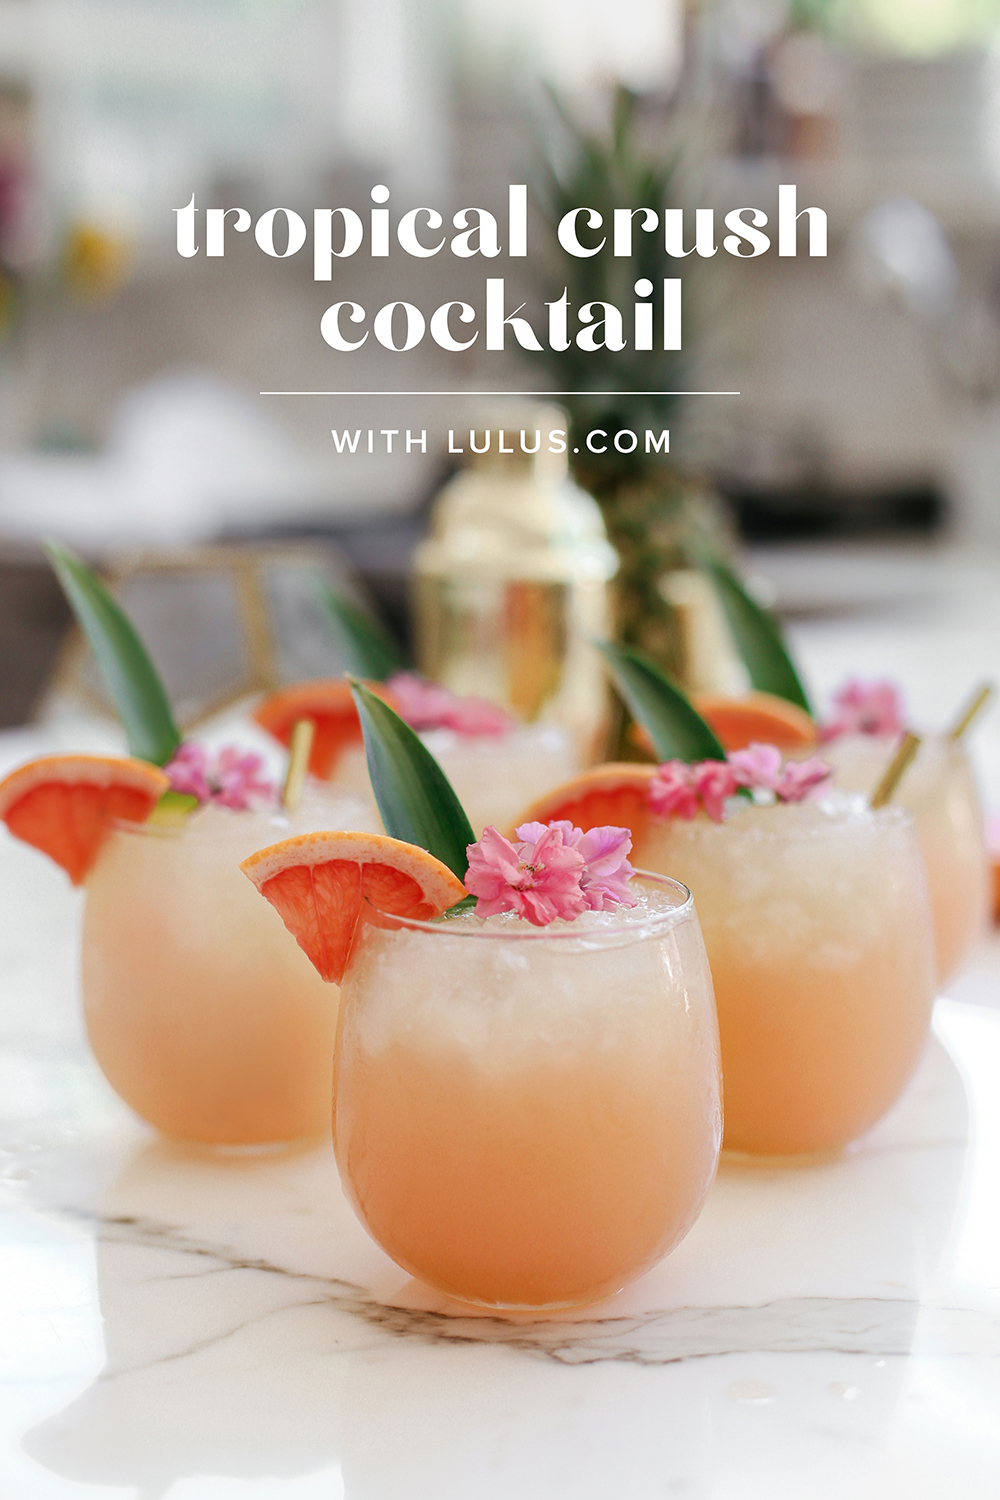 tropical crush cocktail - image 1